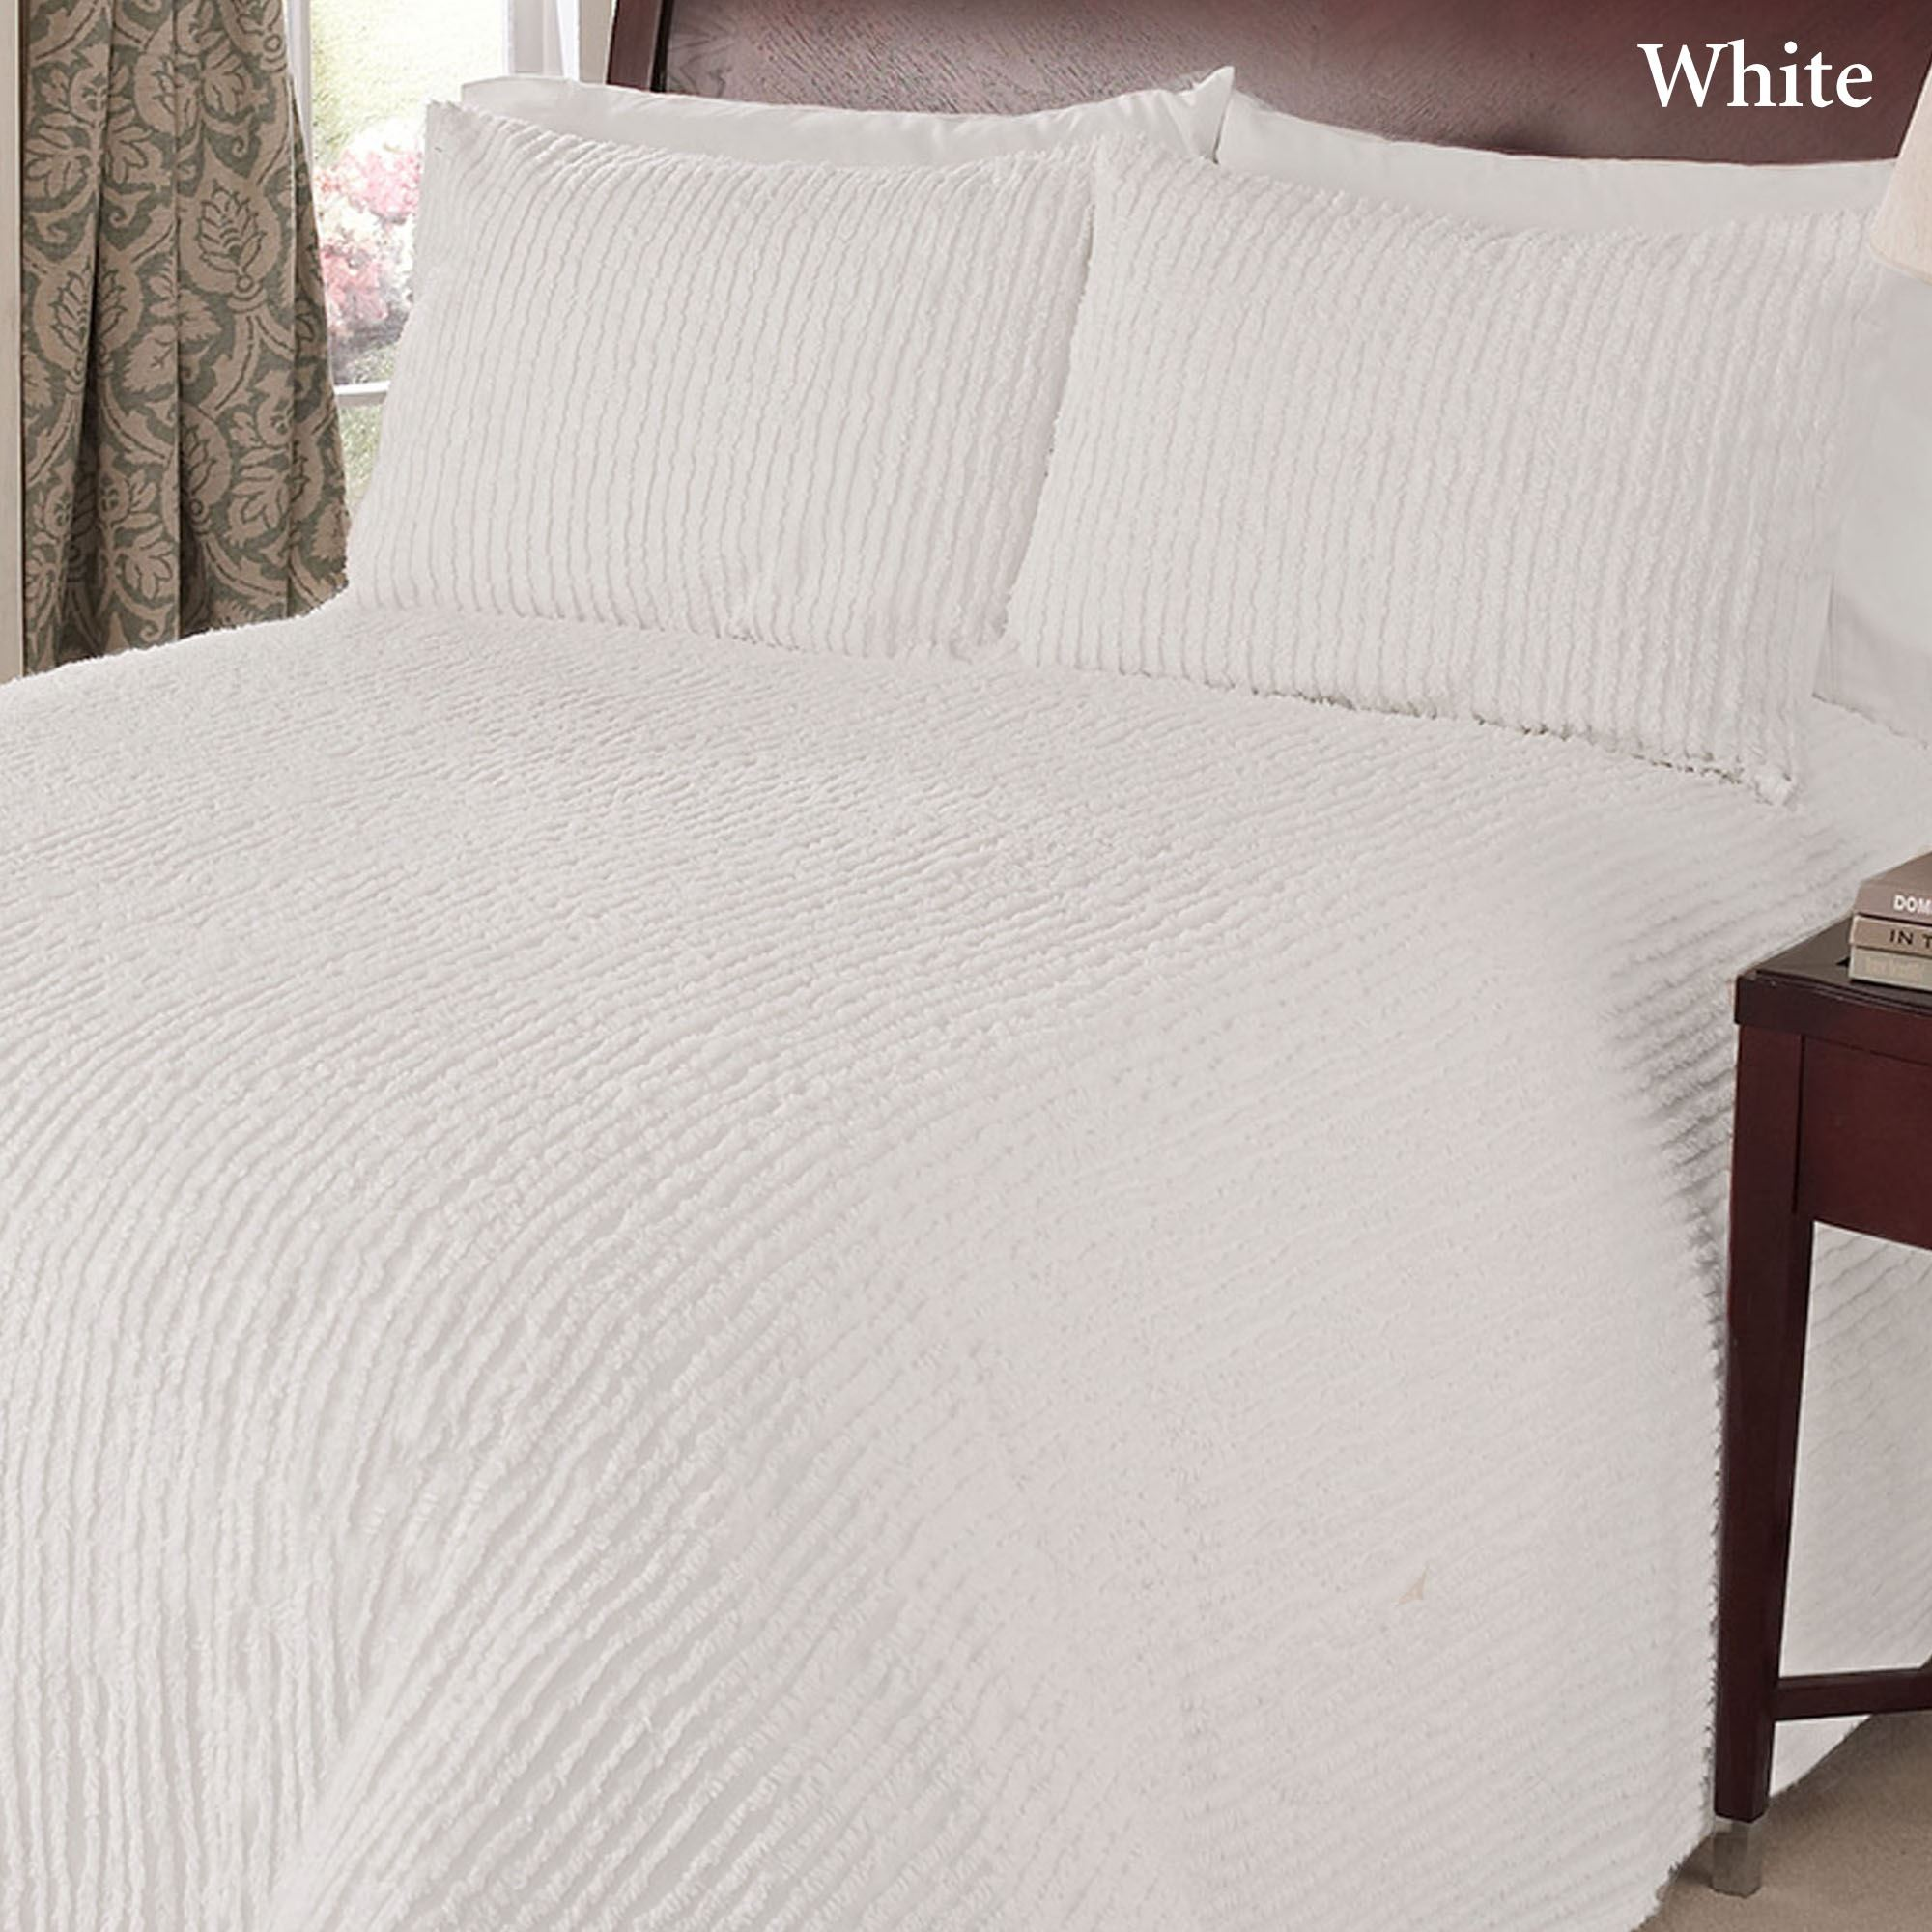 Chenille Bedspreads and Matelasse Bedding Touch of Class